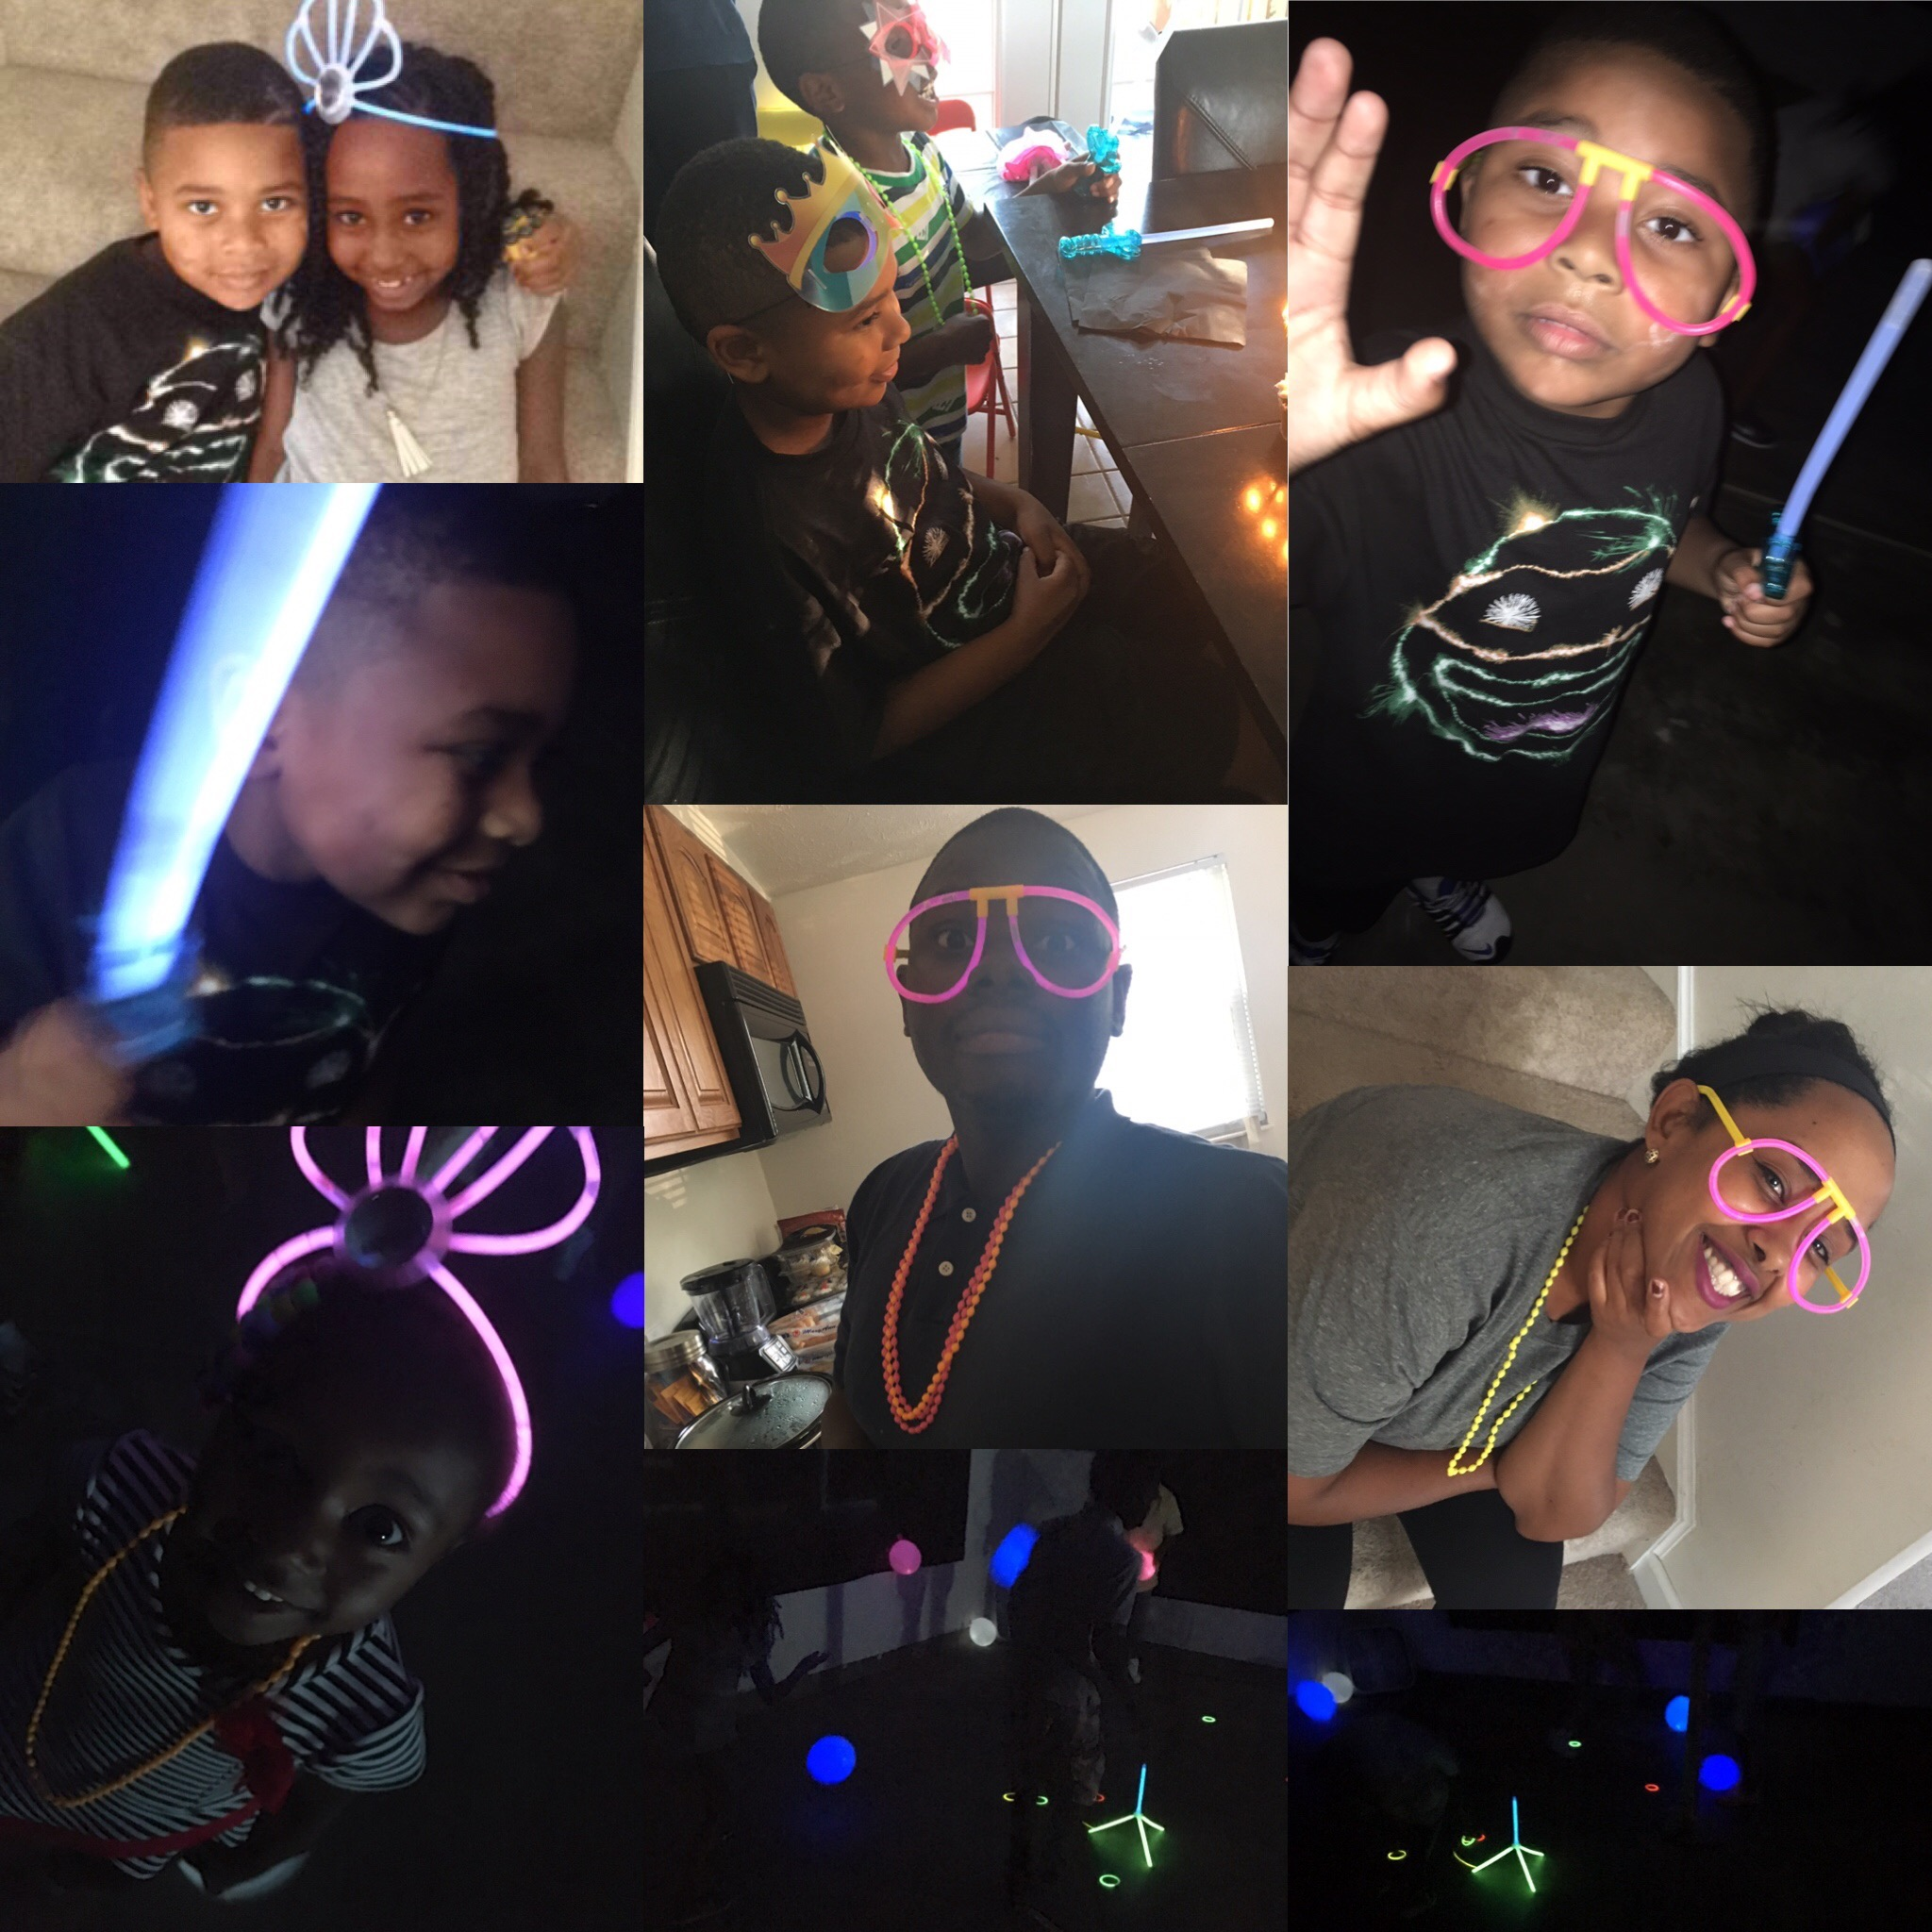 CARDELL'S GLOW IN THE DARK PARTY